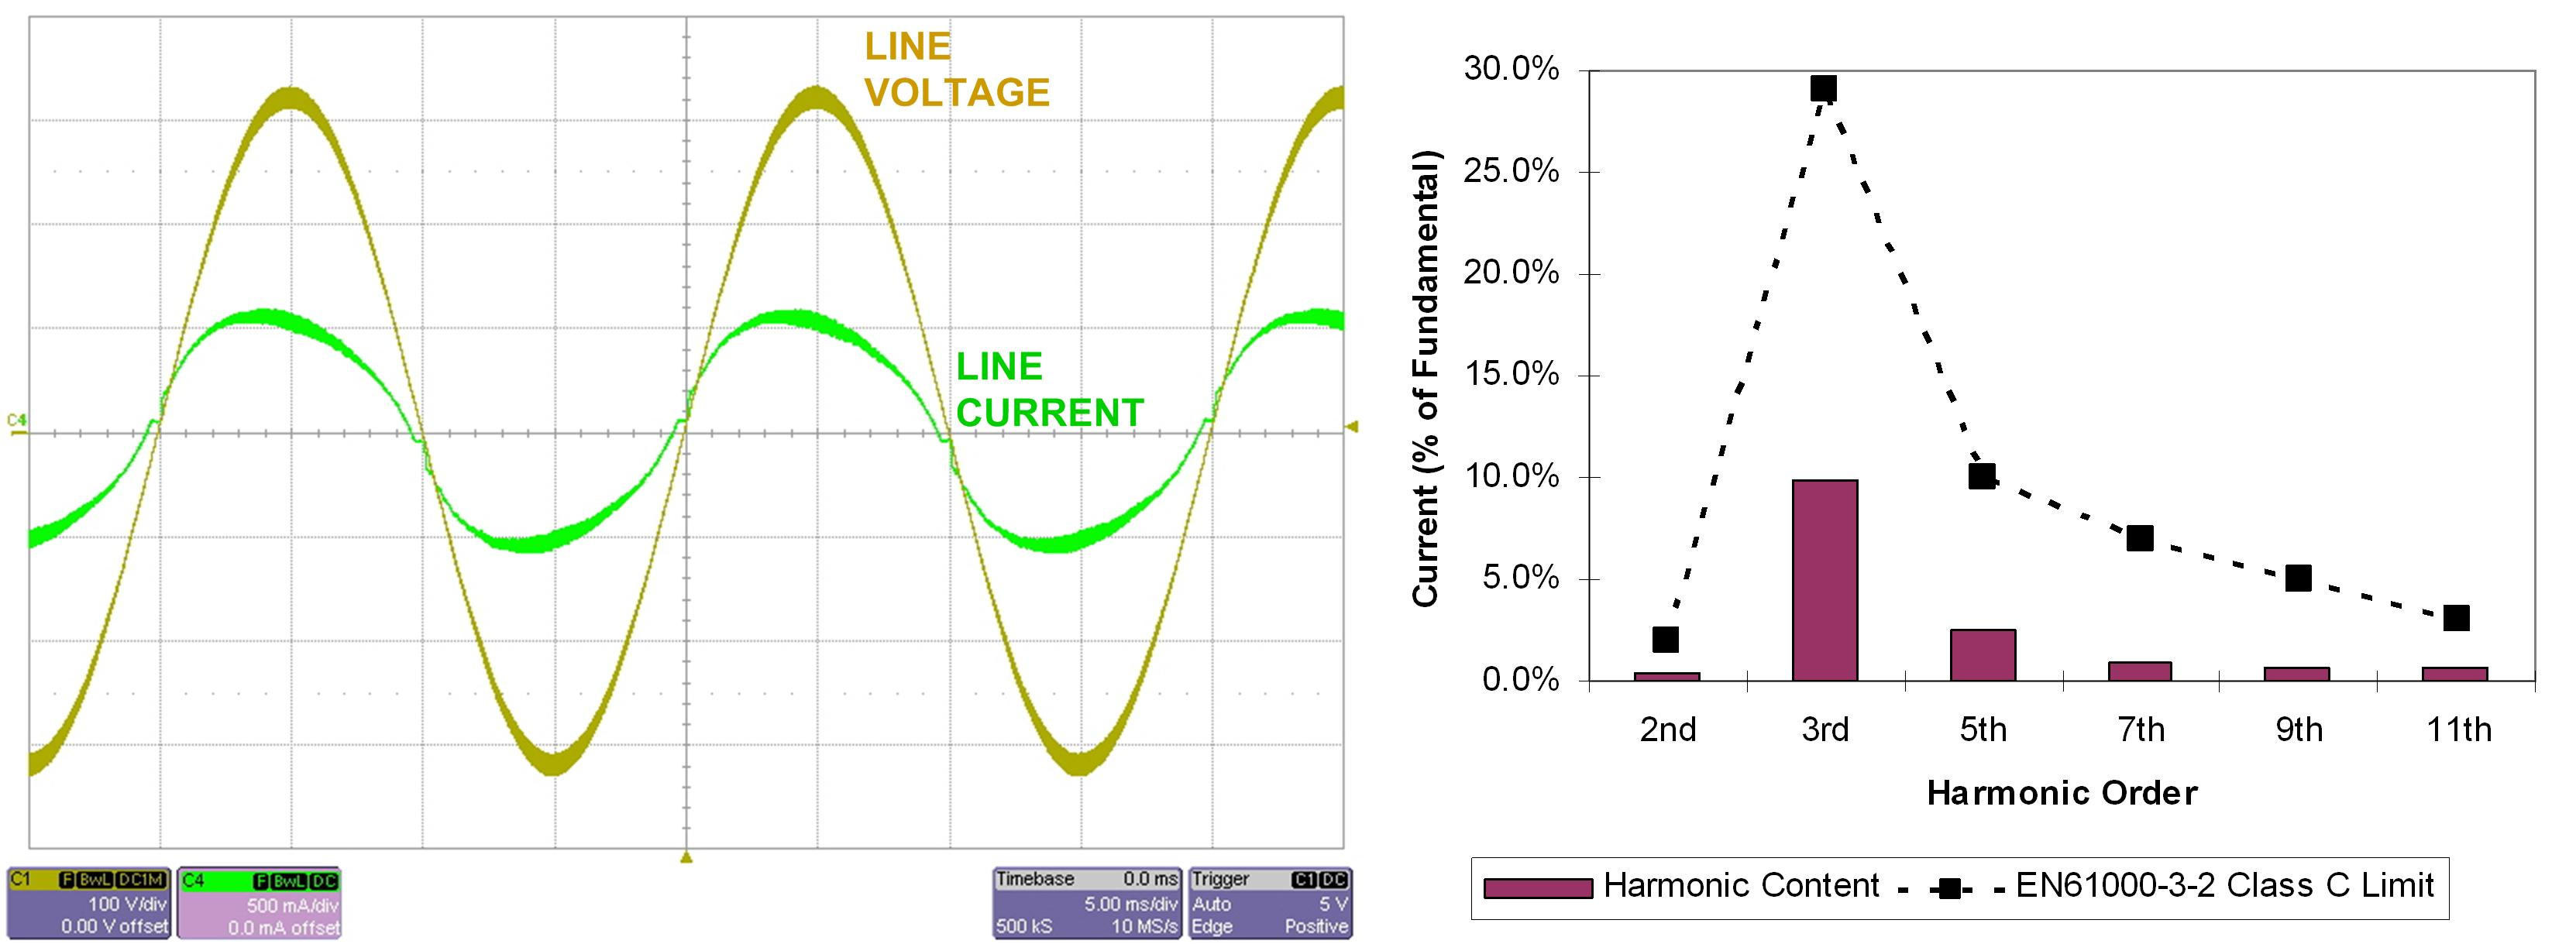 Power Tips: How to Drive LEDs with Power Factor Correction in a